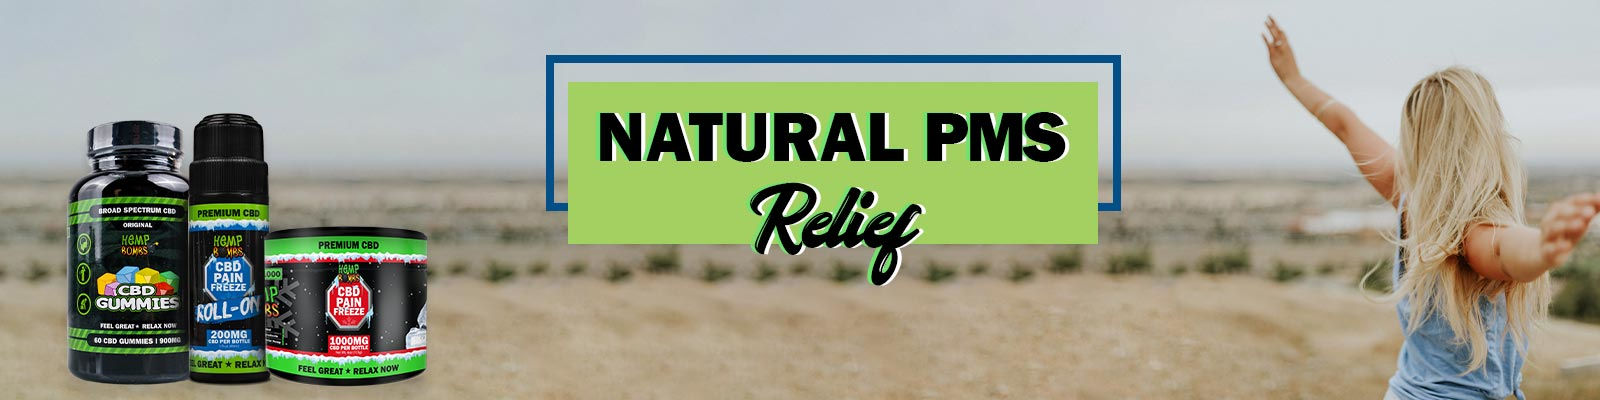 CBD for PMS as Natural Remedies for Menstrual Cramps